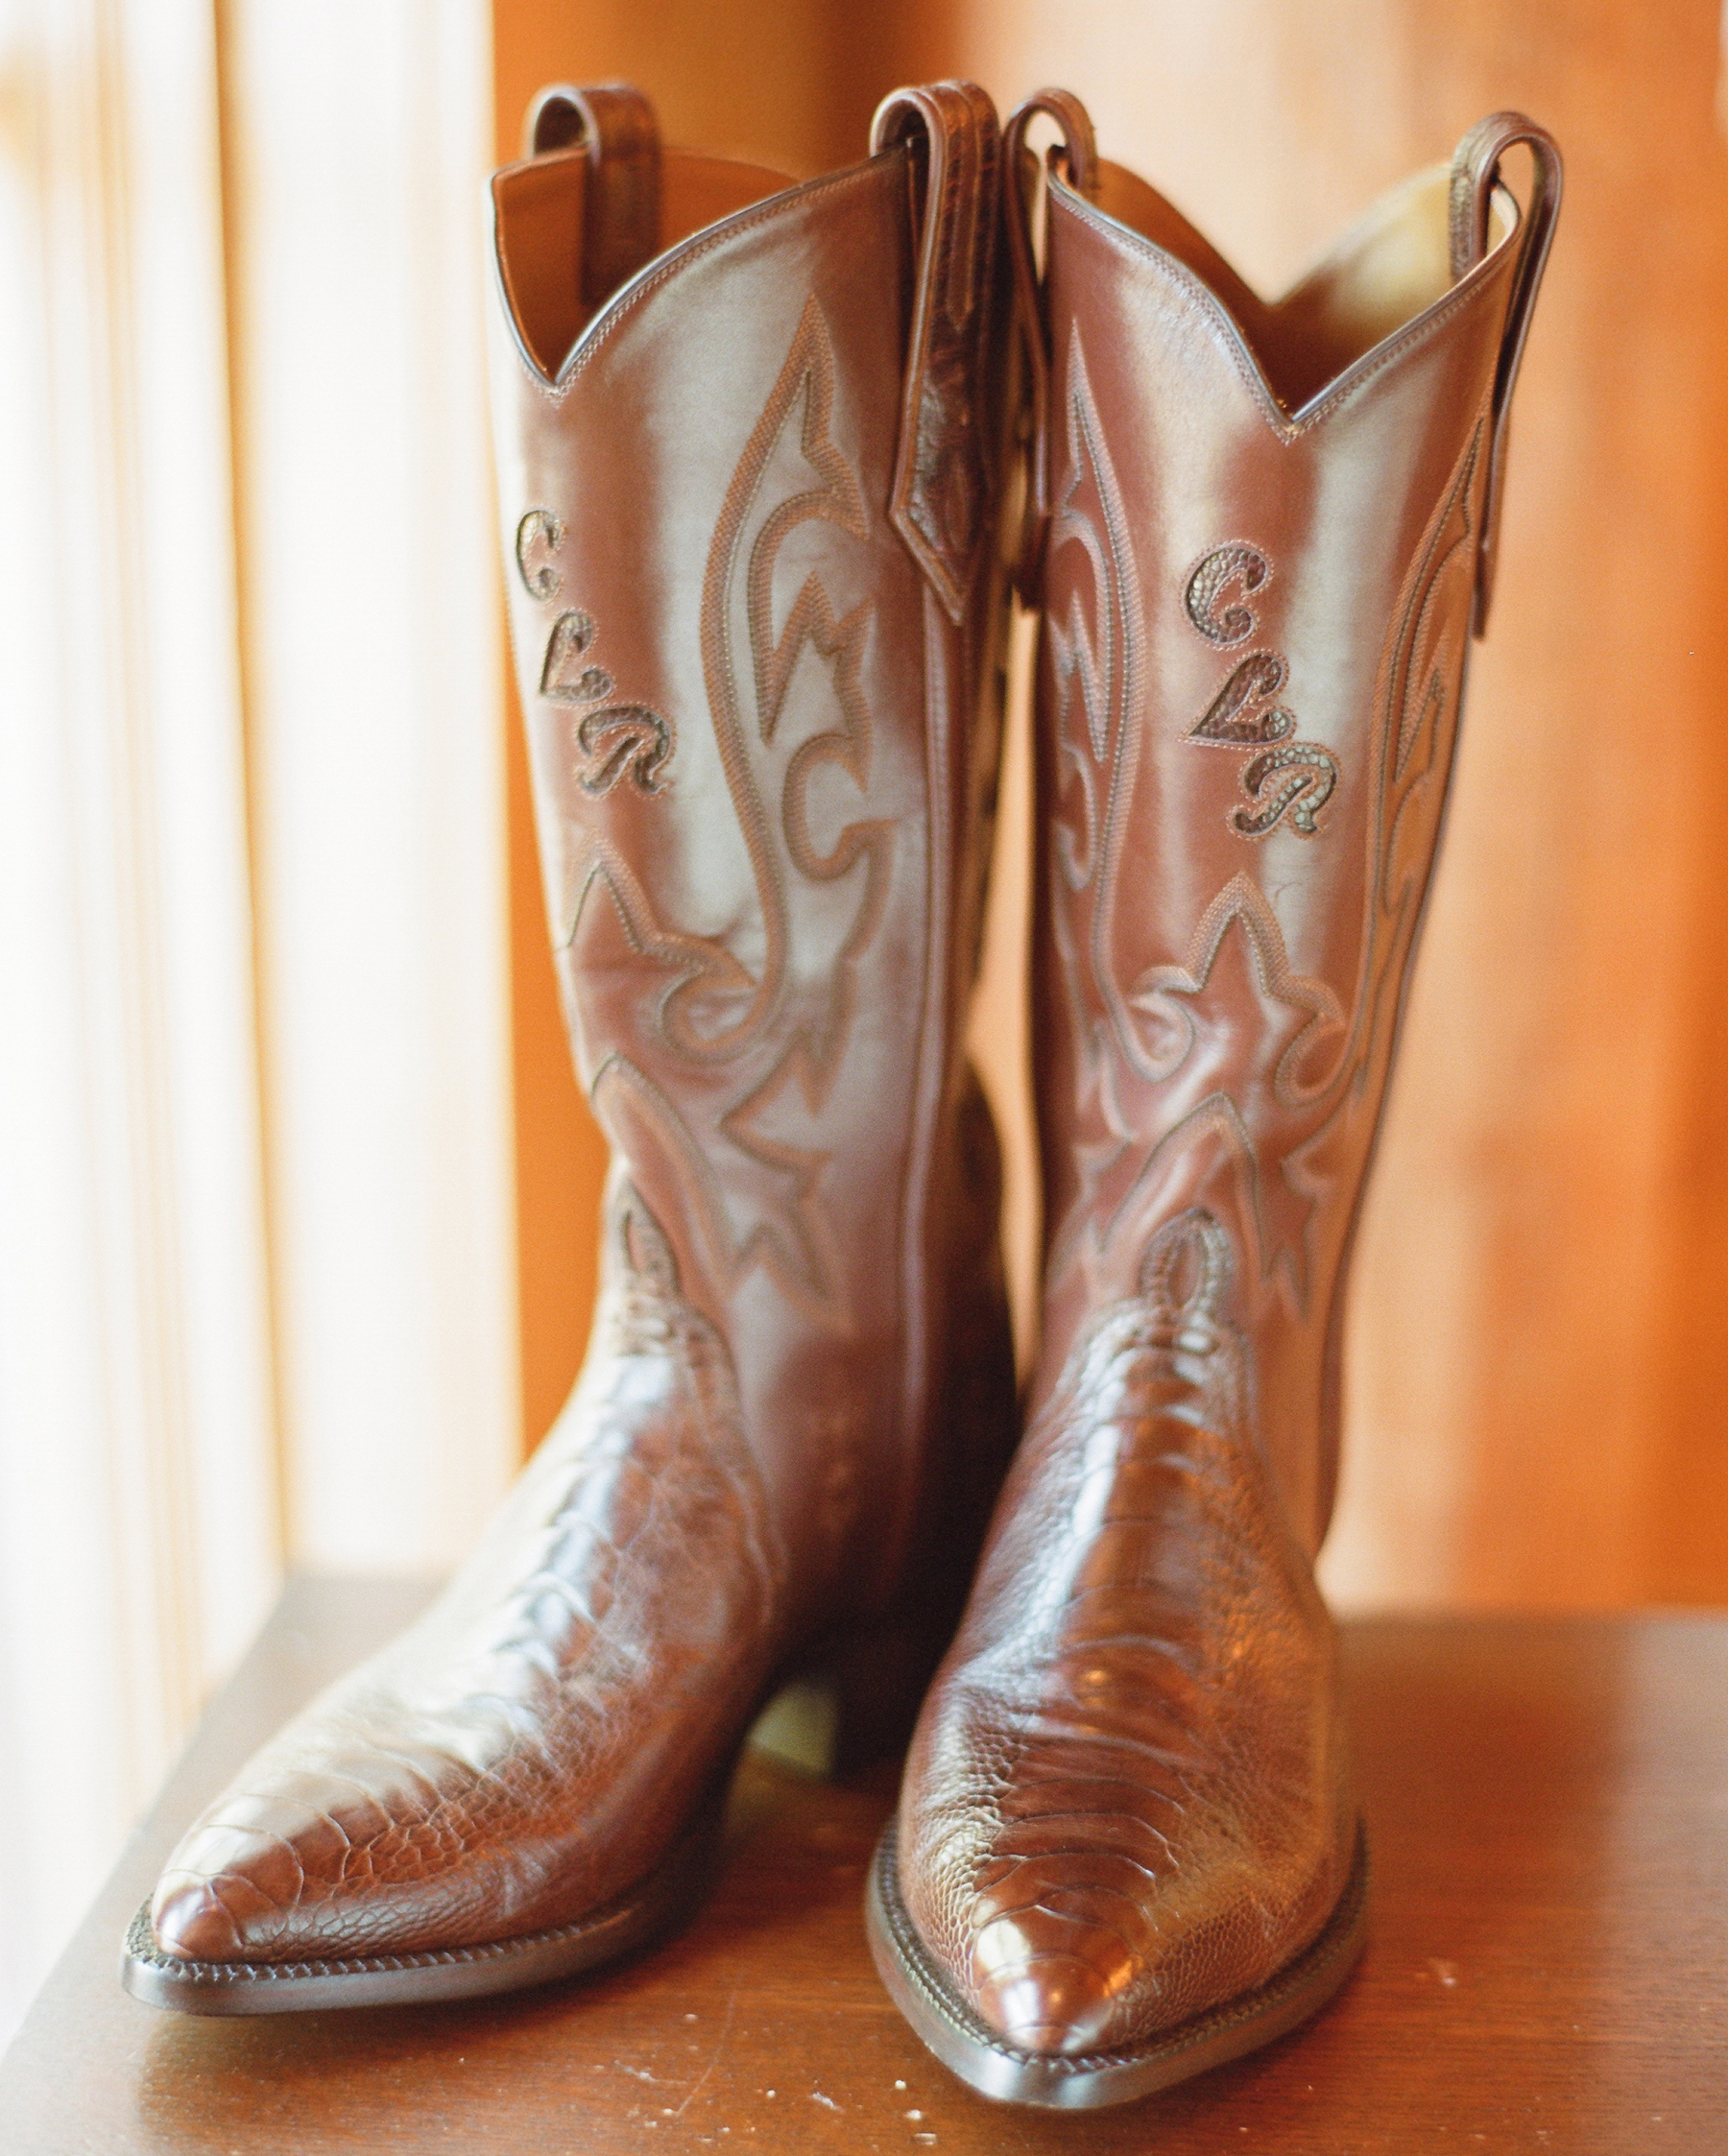 callie-eric-wedding-boots-006-s112113-0815.jpg